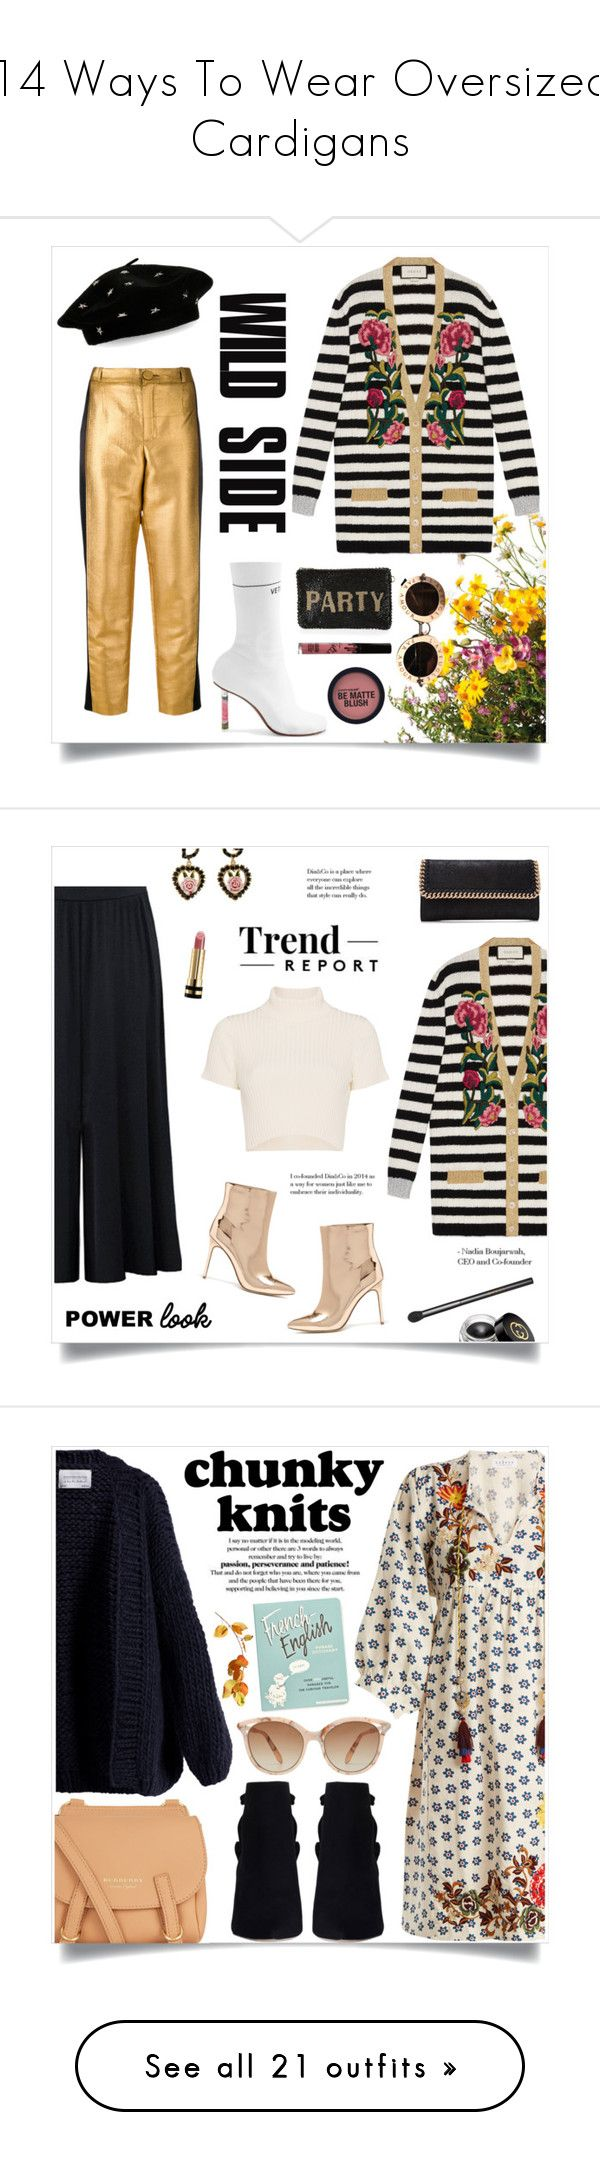 """""""14 Ways To Wear Oversized Cardigans"""" by polyvore-editorial ❤ liked on Polyvore featuring oversizedcardigans, waystowear, Grandin Road, Lanvin, Vetements, Gucci, Mary Frances Accessories, Steve Madden, Kylie Cosmetics and Forever 21"""